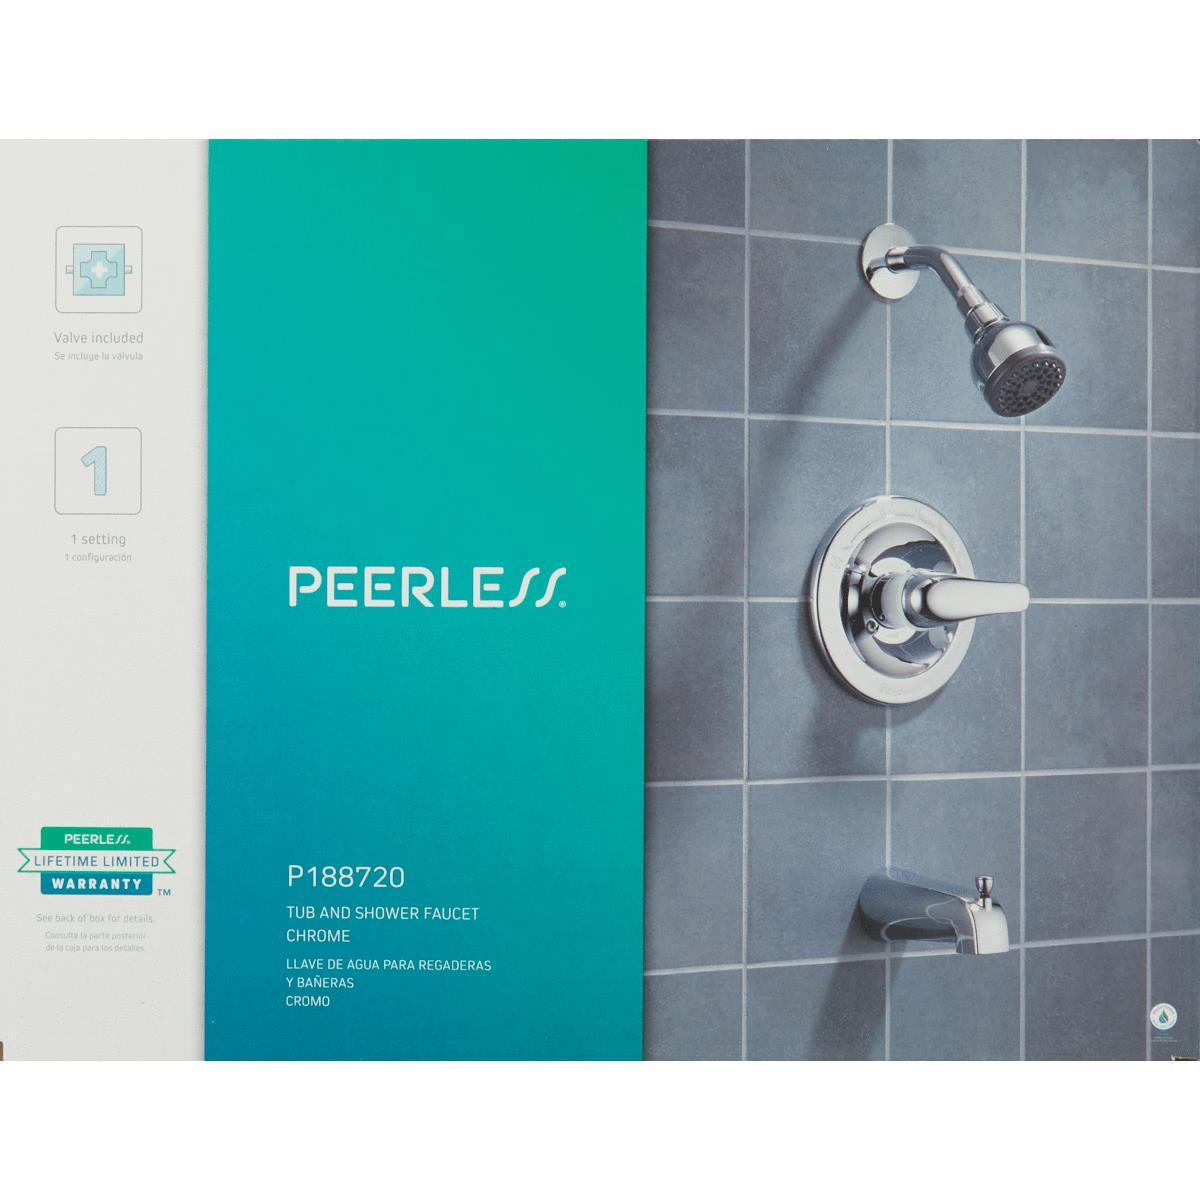 Peerless Chrome 1 Handle Lever Tub And Shower Faucet Lake Hardware Lumber